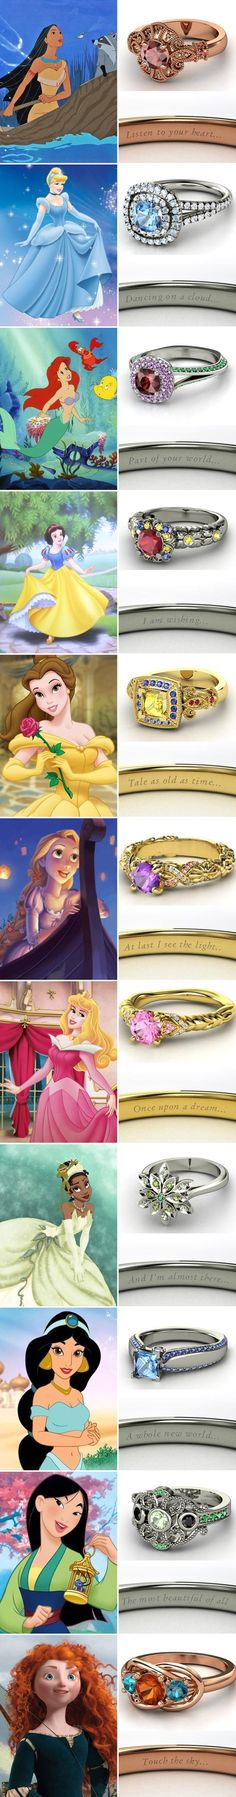 Disney princess wedding rings